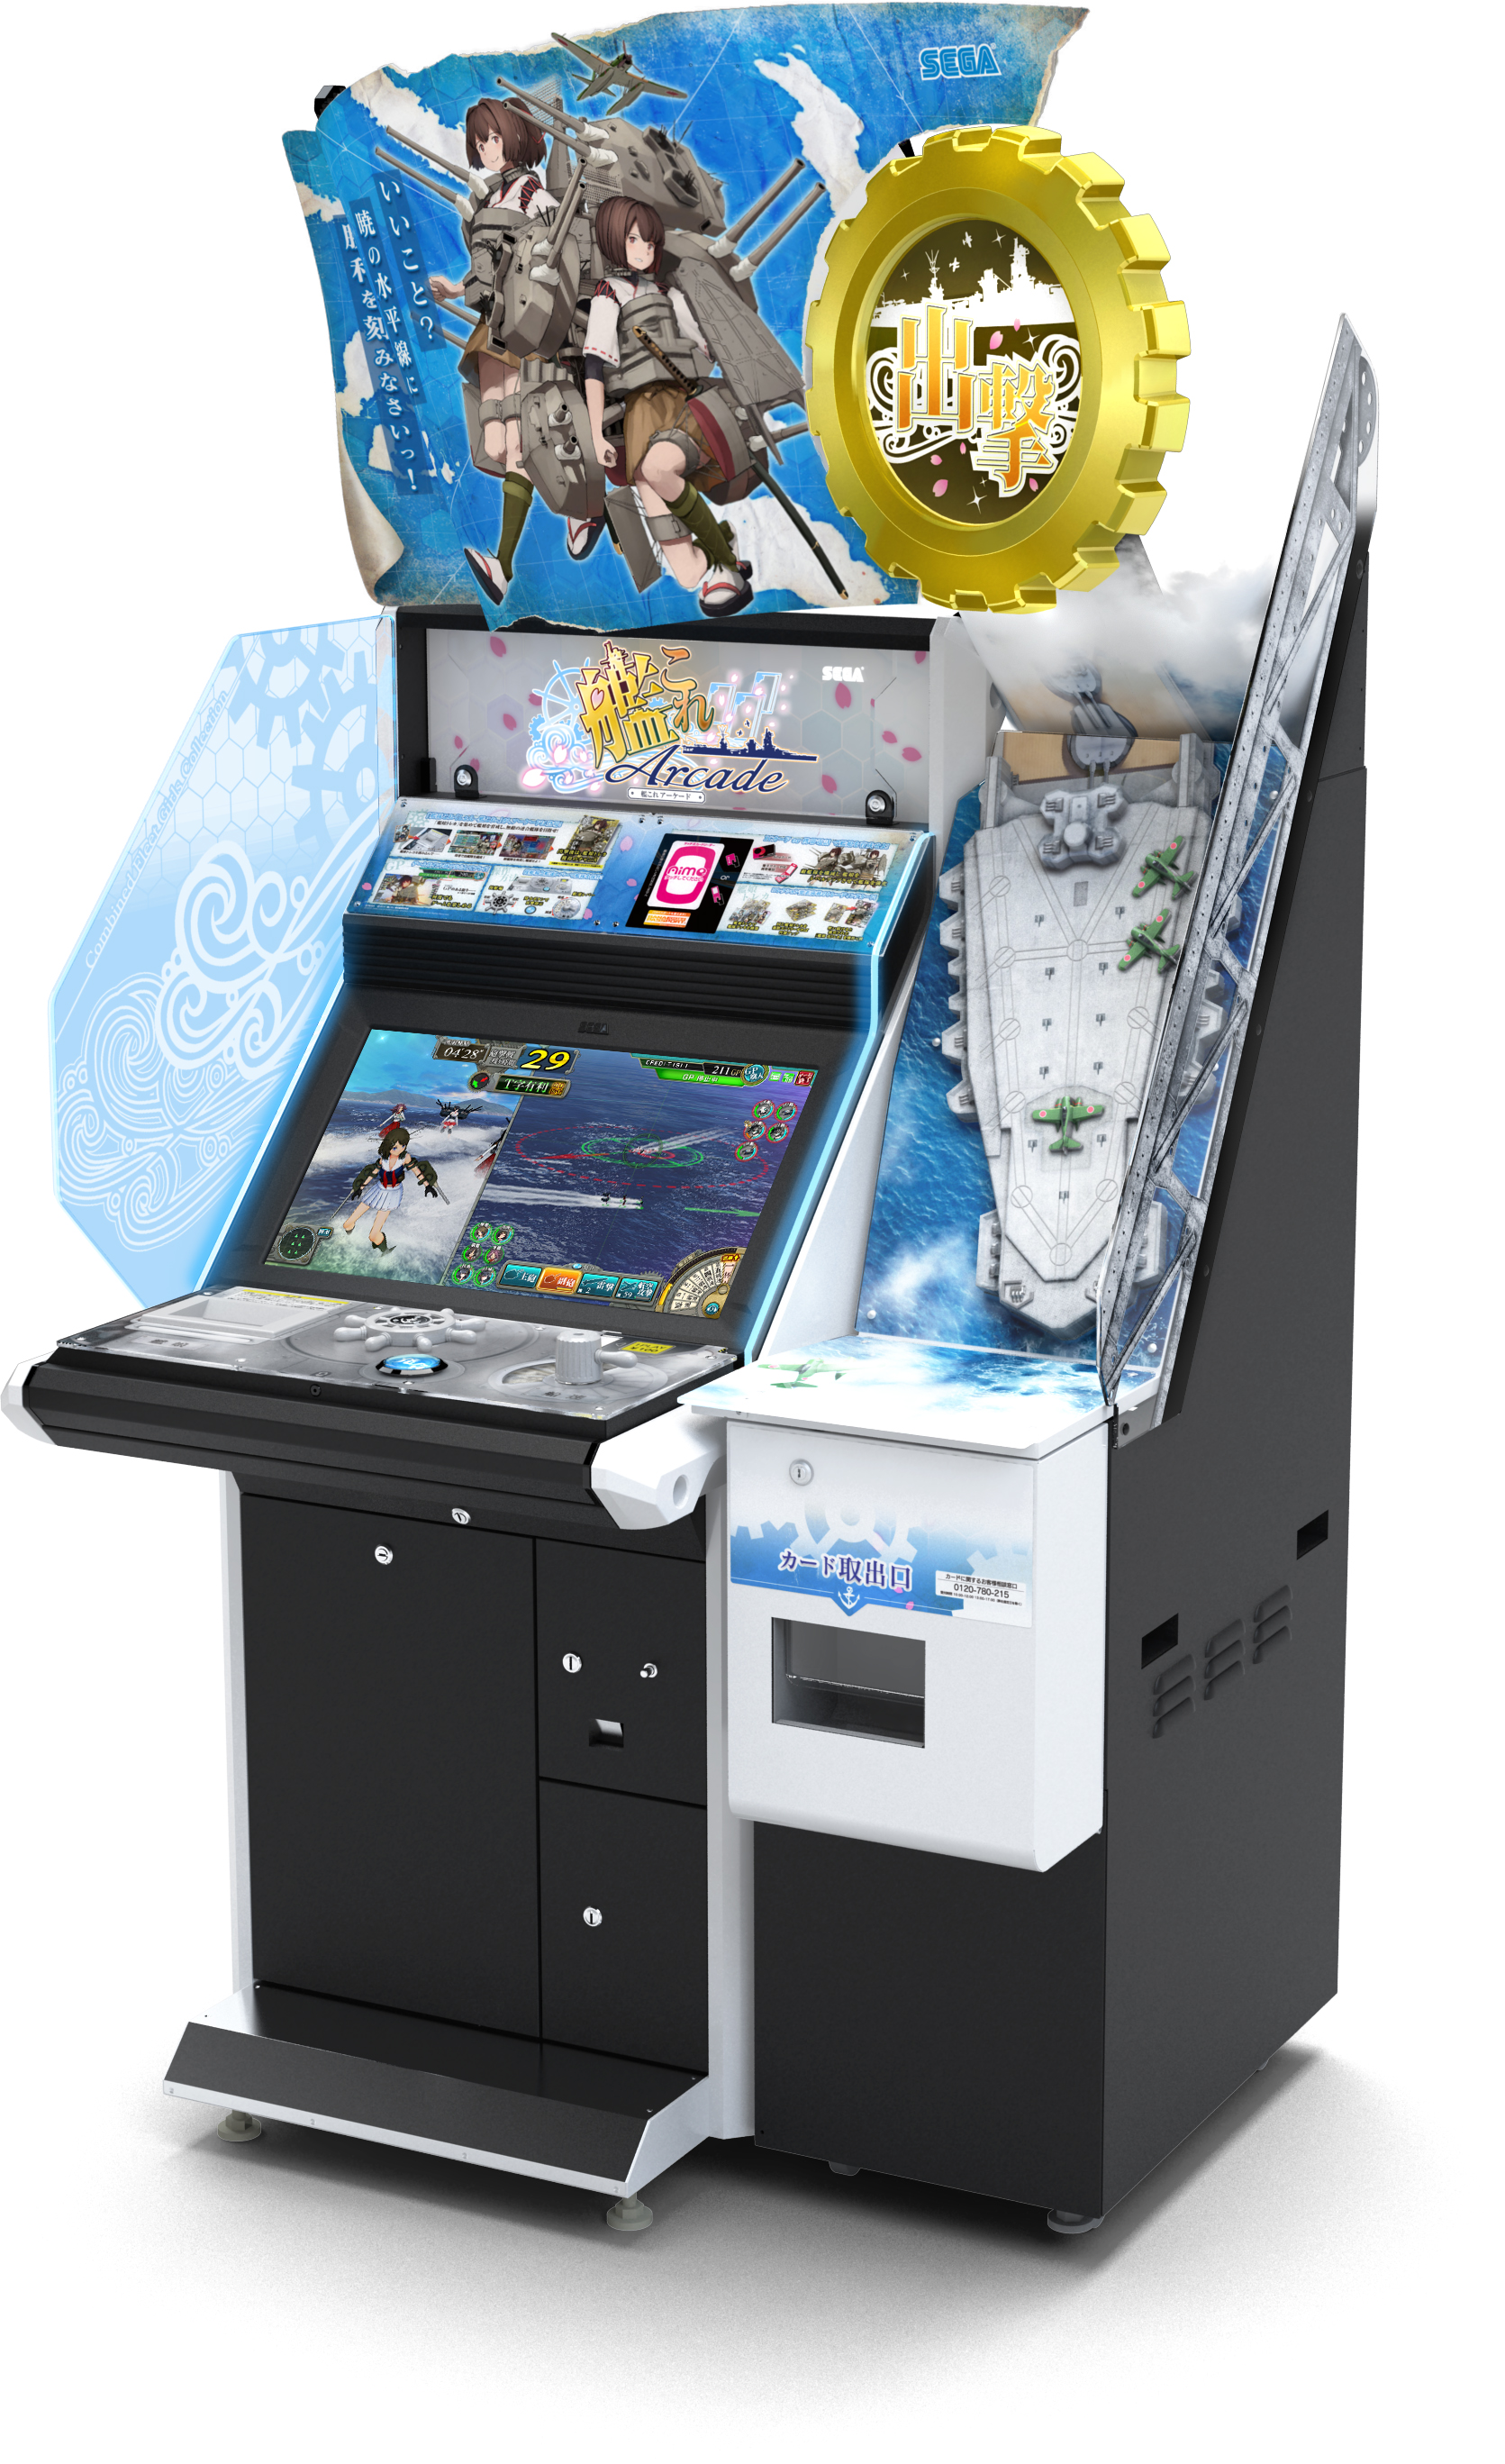 If you could have one arcade cabinet/pinball machine, what would ...